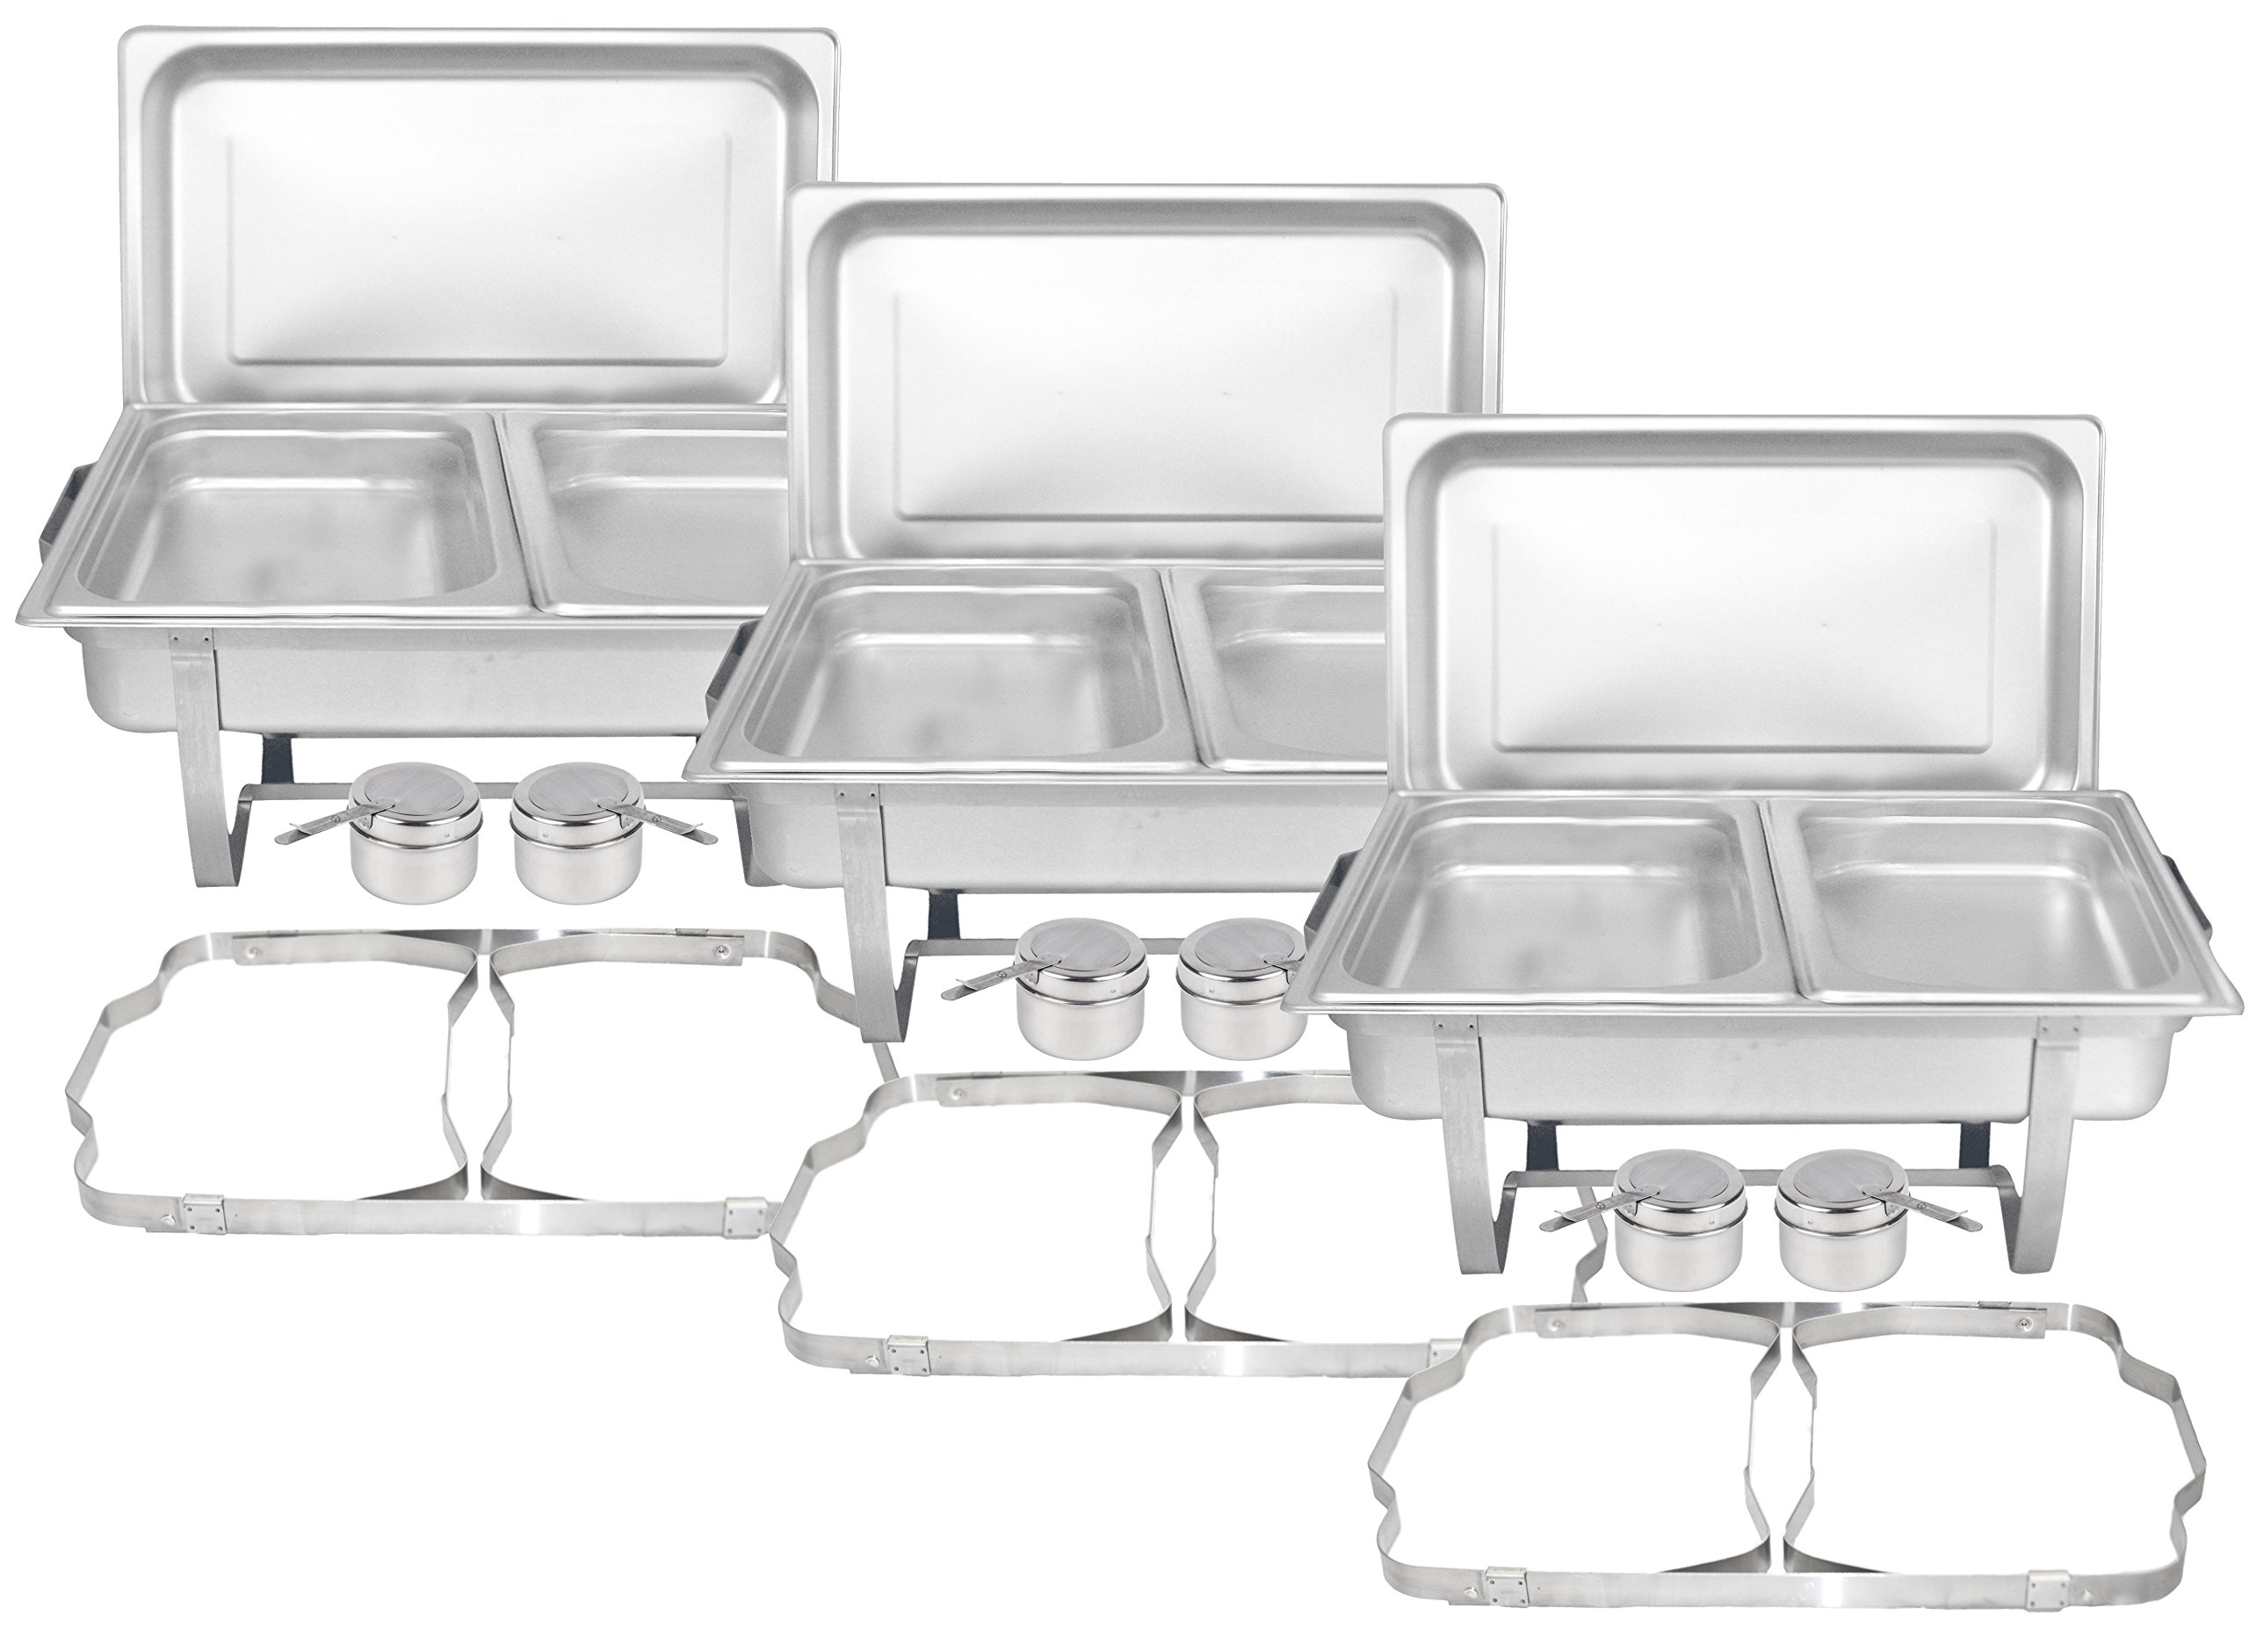 Tiger Chef 8 Quart Full Size Stainless Steel Chafer with Folding Frame and Cool-Touch Plastic on Top (3, Full Size with 1/2 Inserts) by Tiger Chef